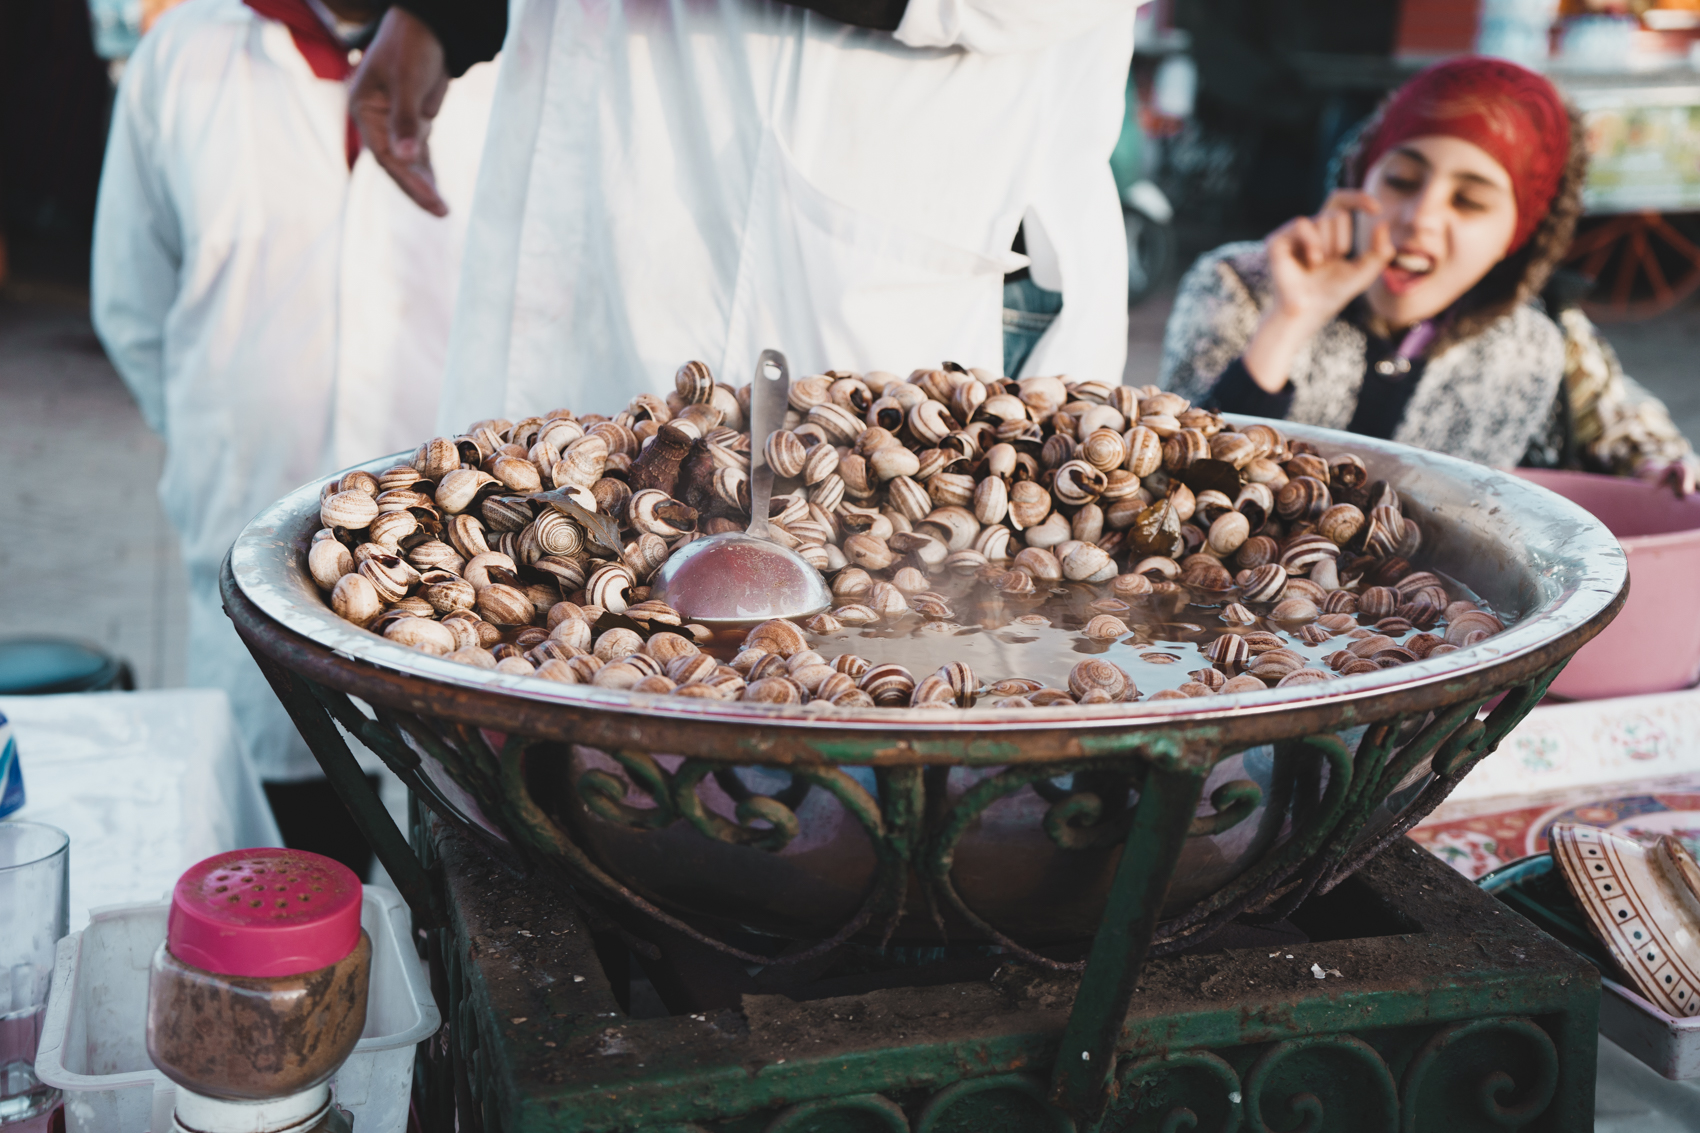 Snail Soup at Jemaa el-Fnaa Night Market in Marrakech, Morocco